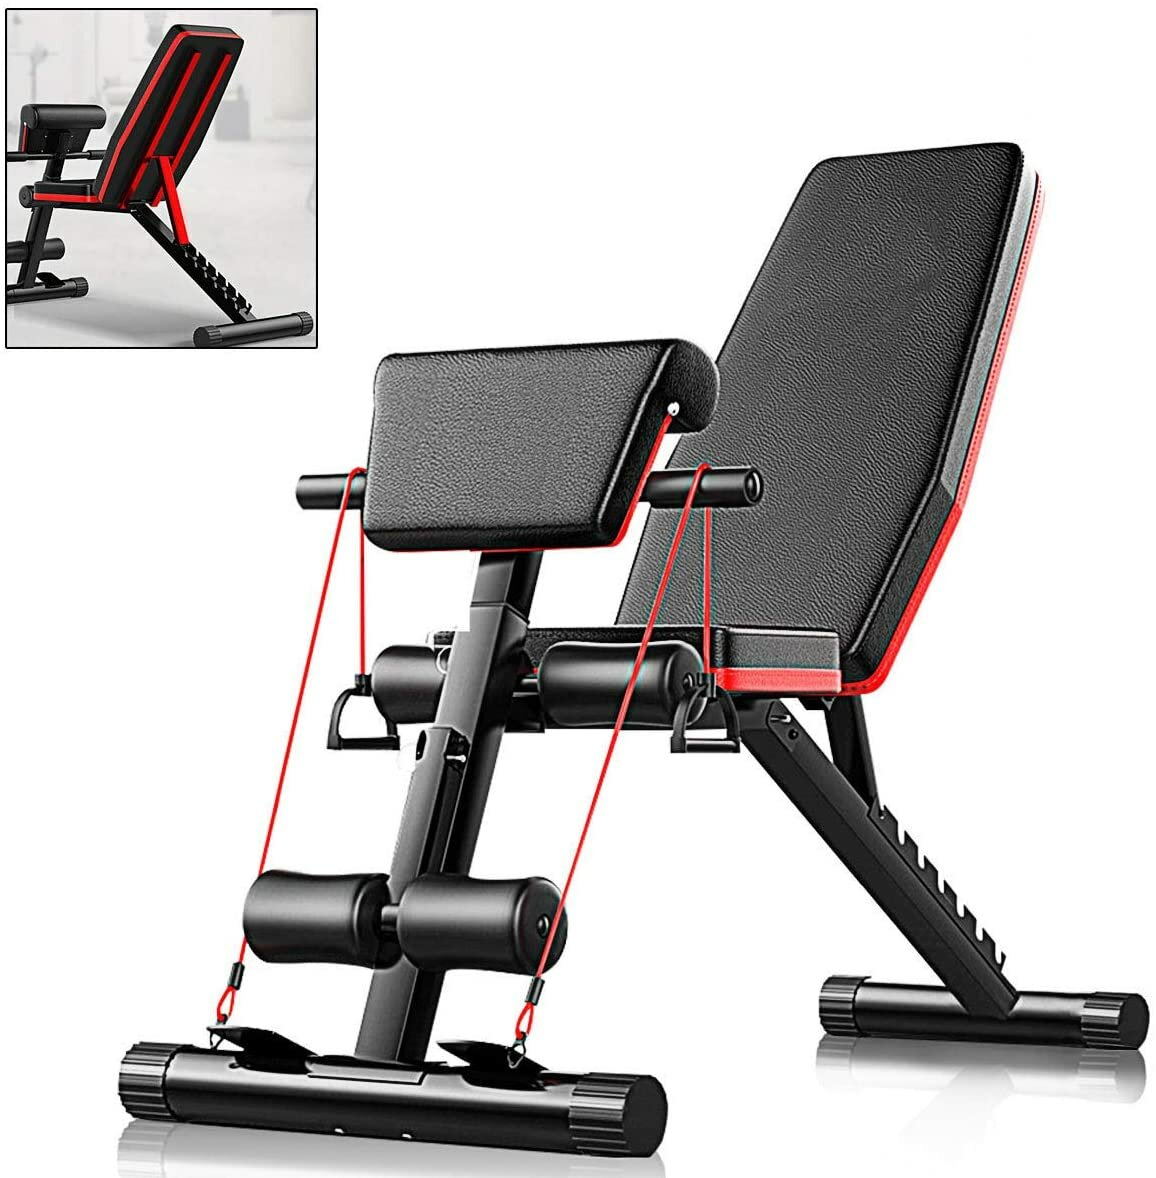 5-in-1 Gym Bench Multifunctional Supine Board Foldable Abdominal Training Machine Bodybuilding Home Fitness Equipment